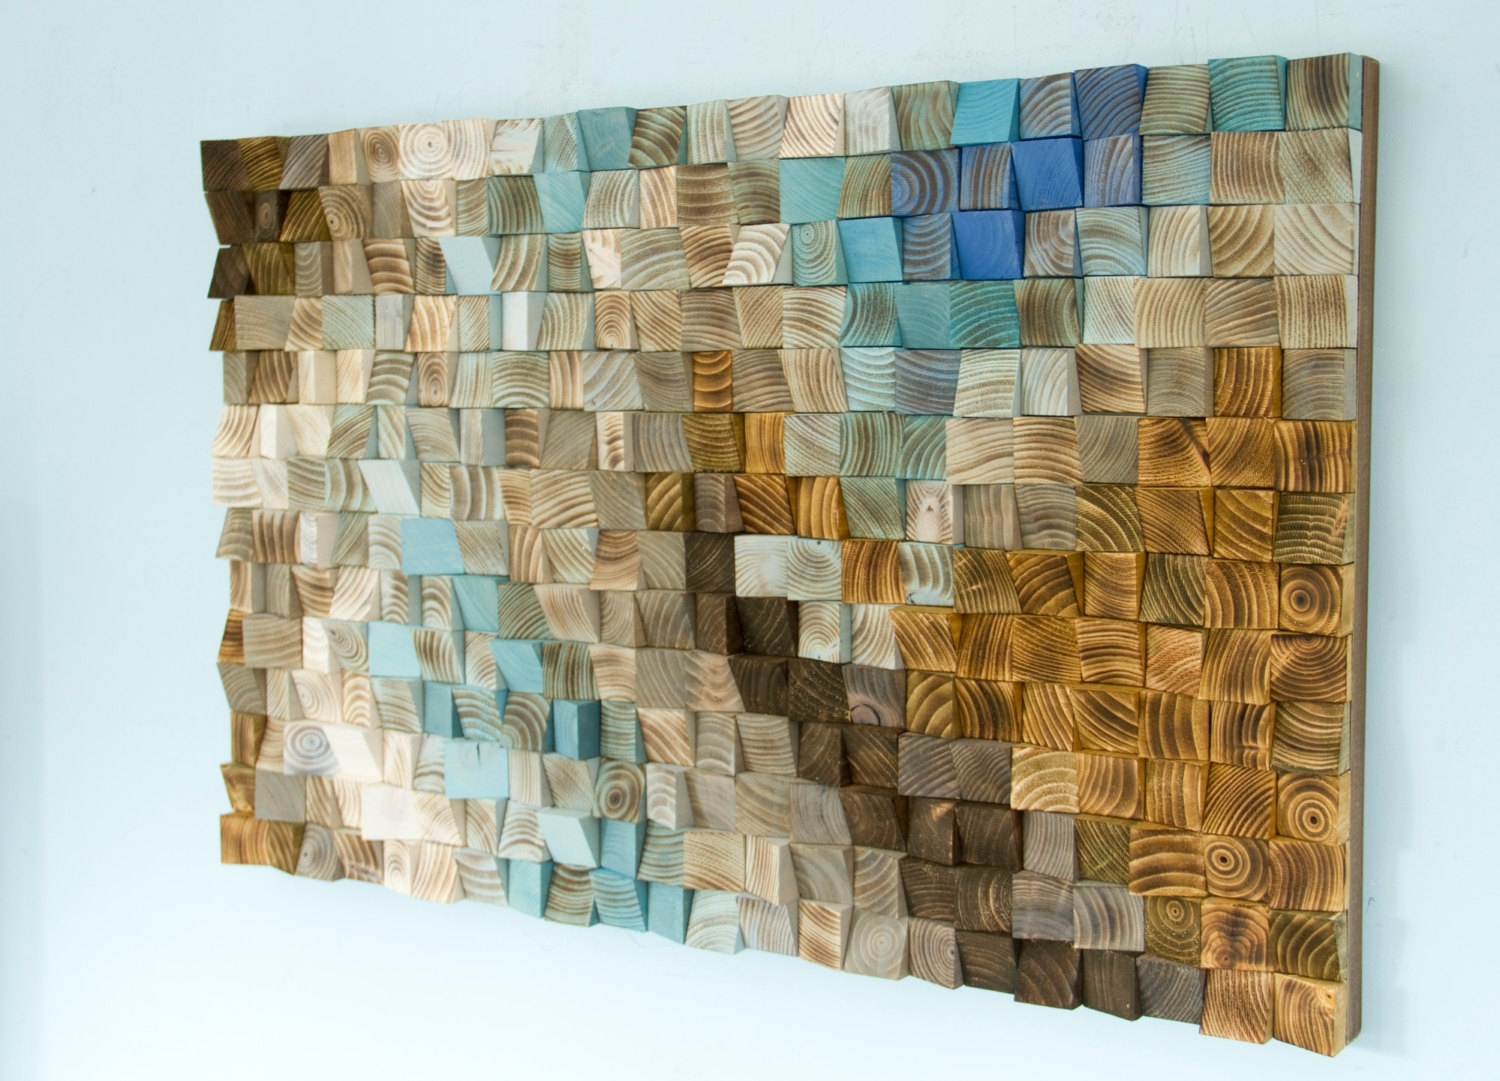 Daebabefaad Good Mosaic Wall Art - Home Design And Wall Decoration Ideas for Mosaic Wall Art (Image 4 of 20)